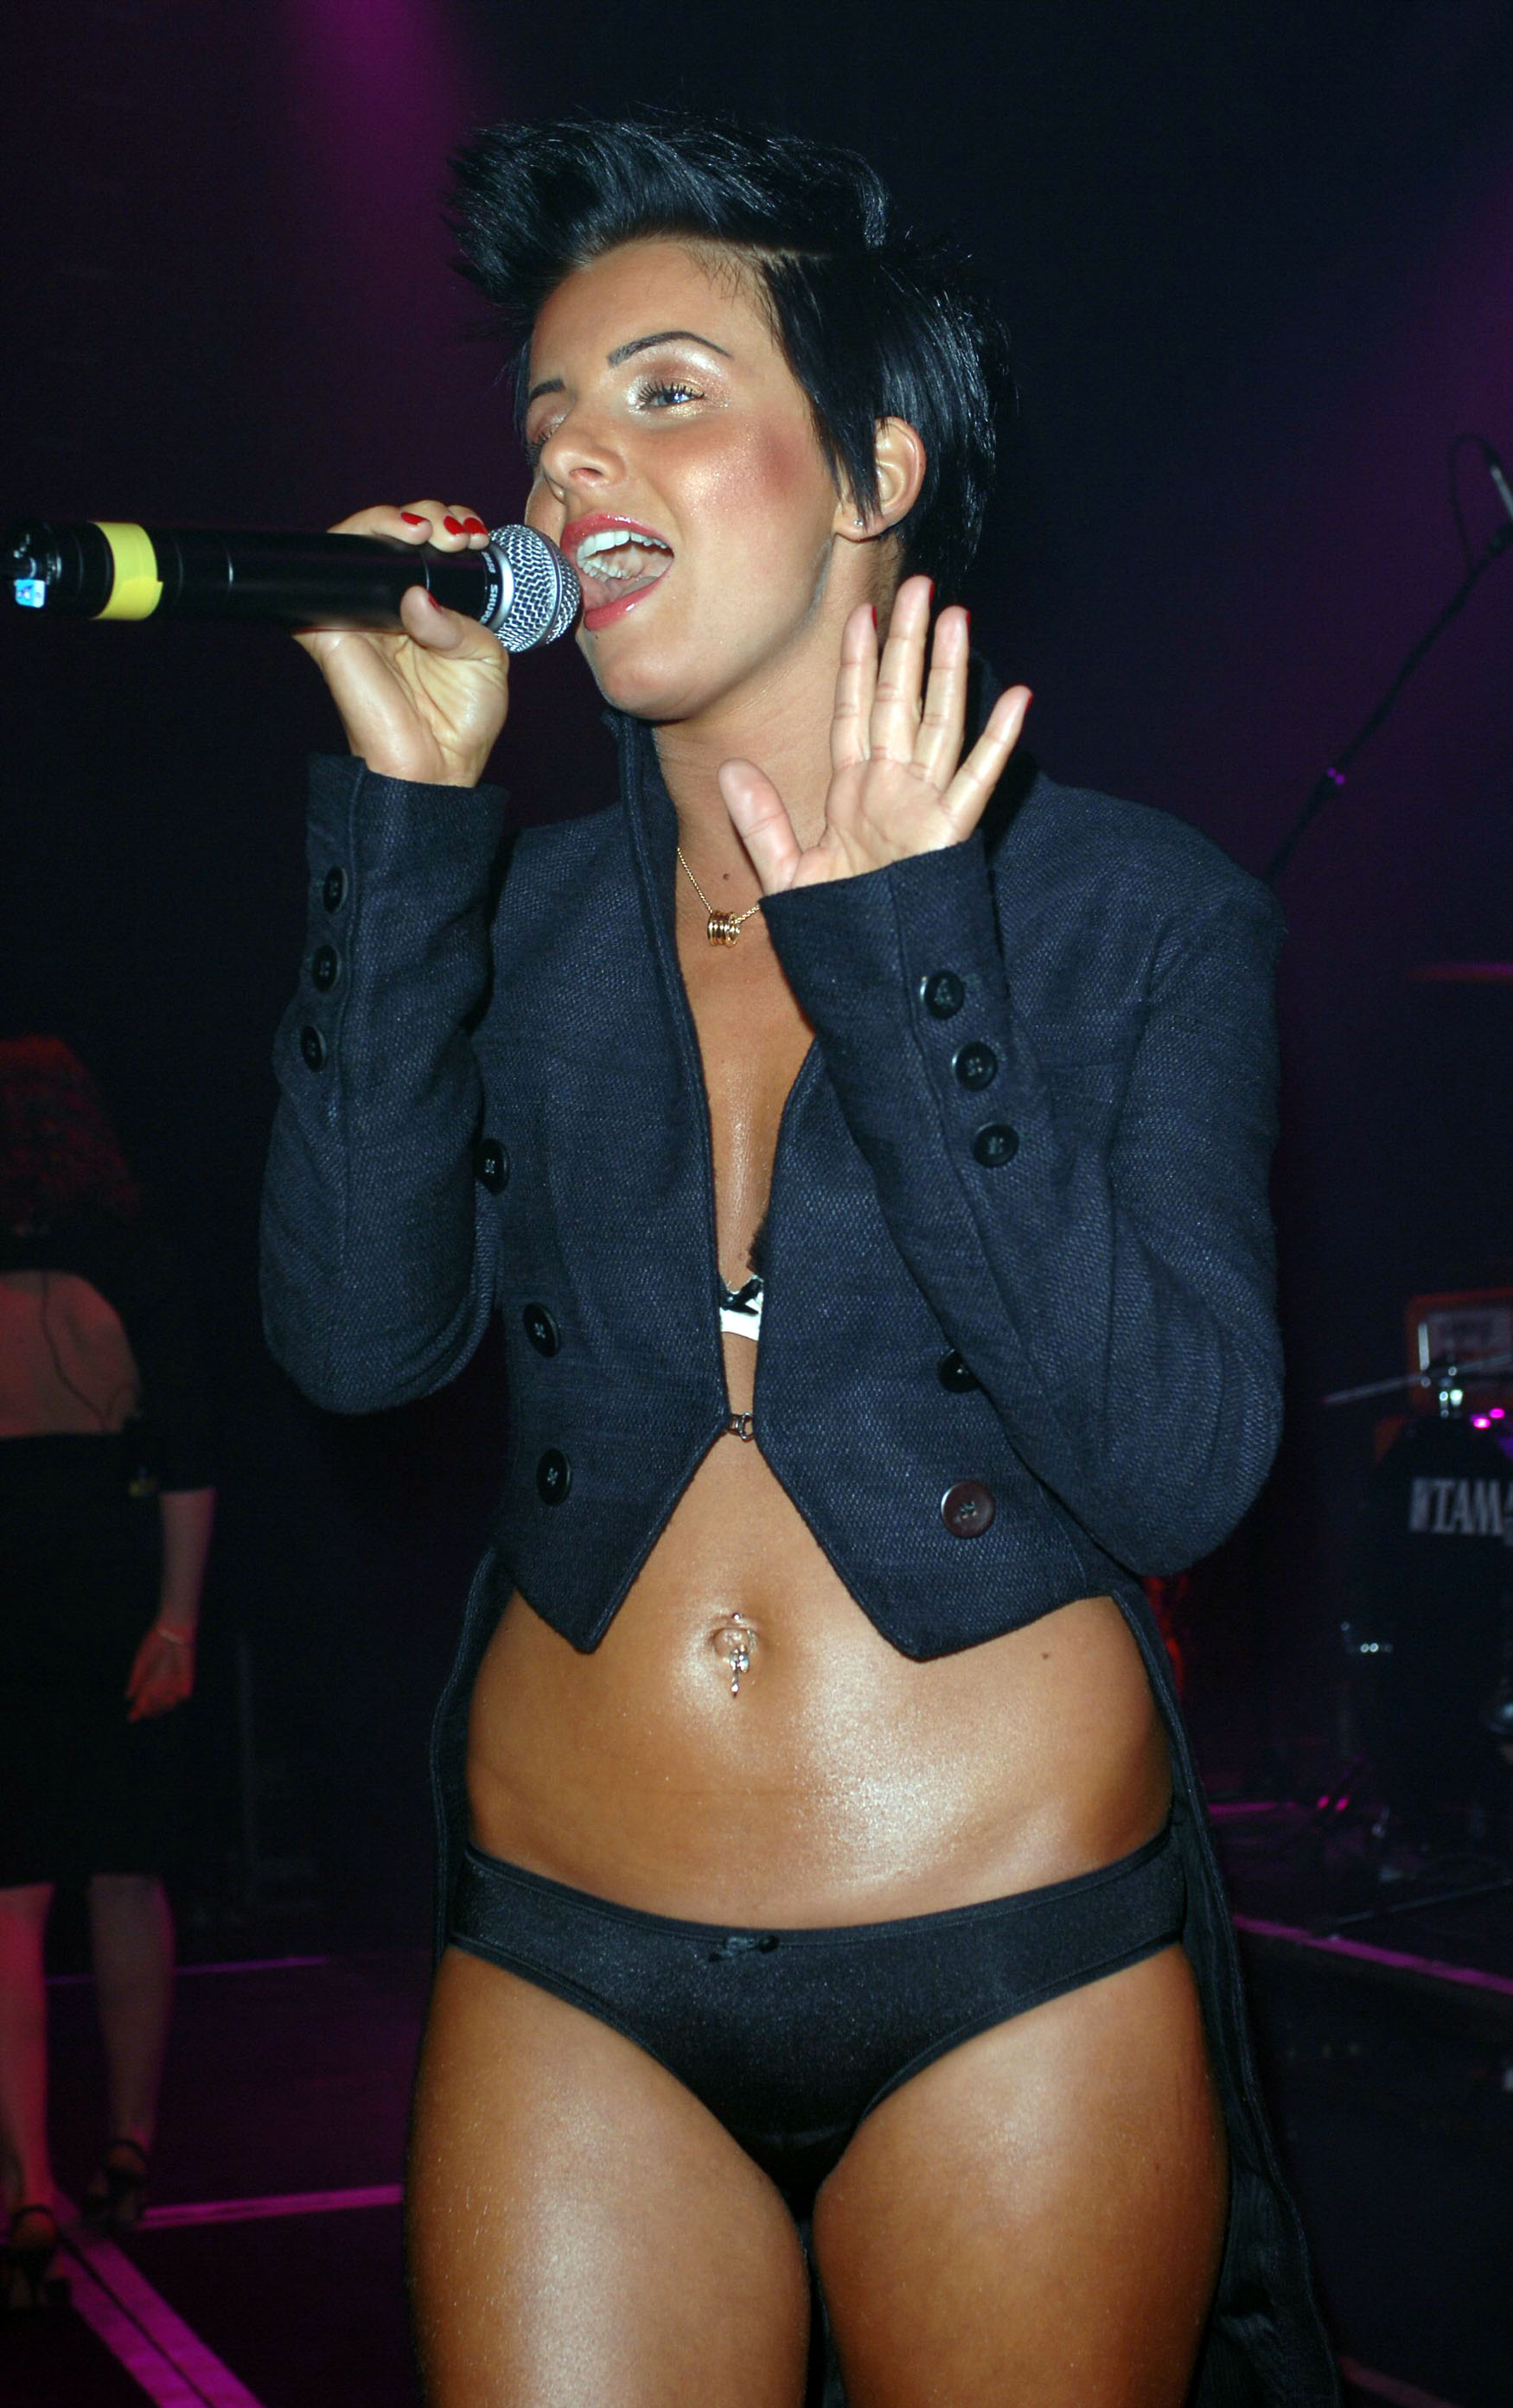 Tatu Perform at G-A-Y in London 28.01.2006